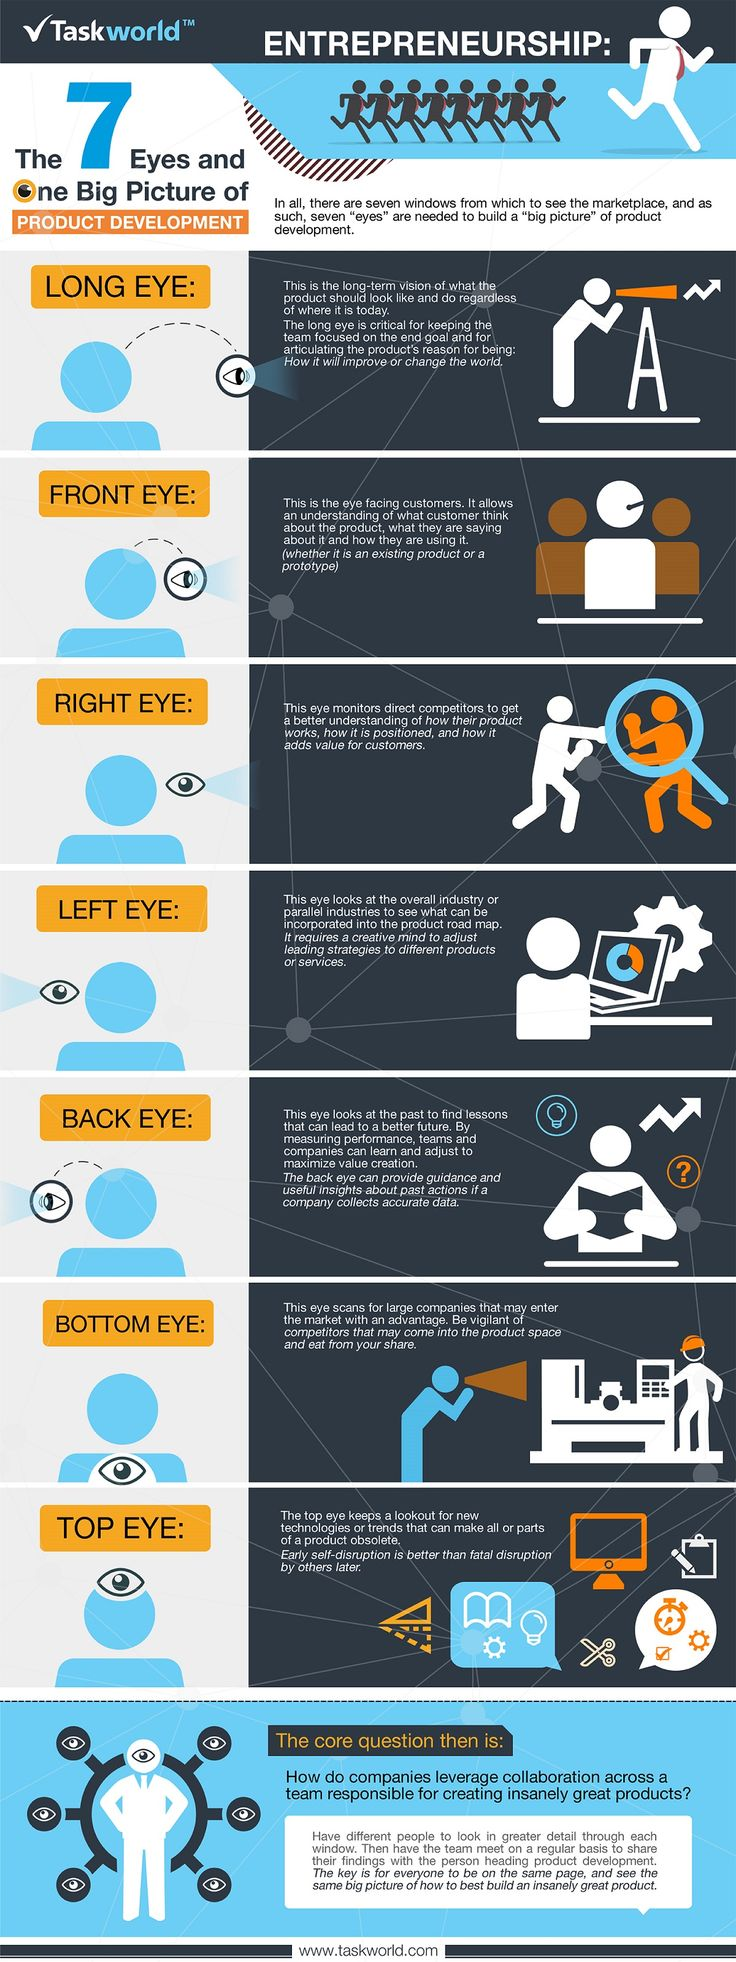 The 7 Eyes and One Big Picture of Product Development #Infographic